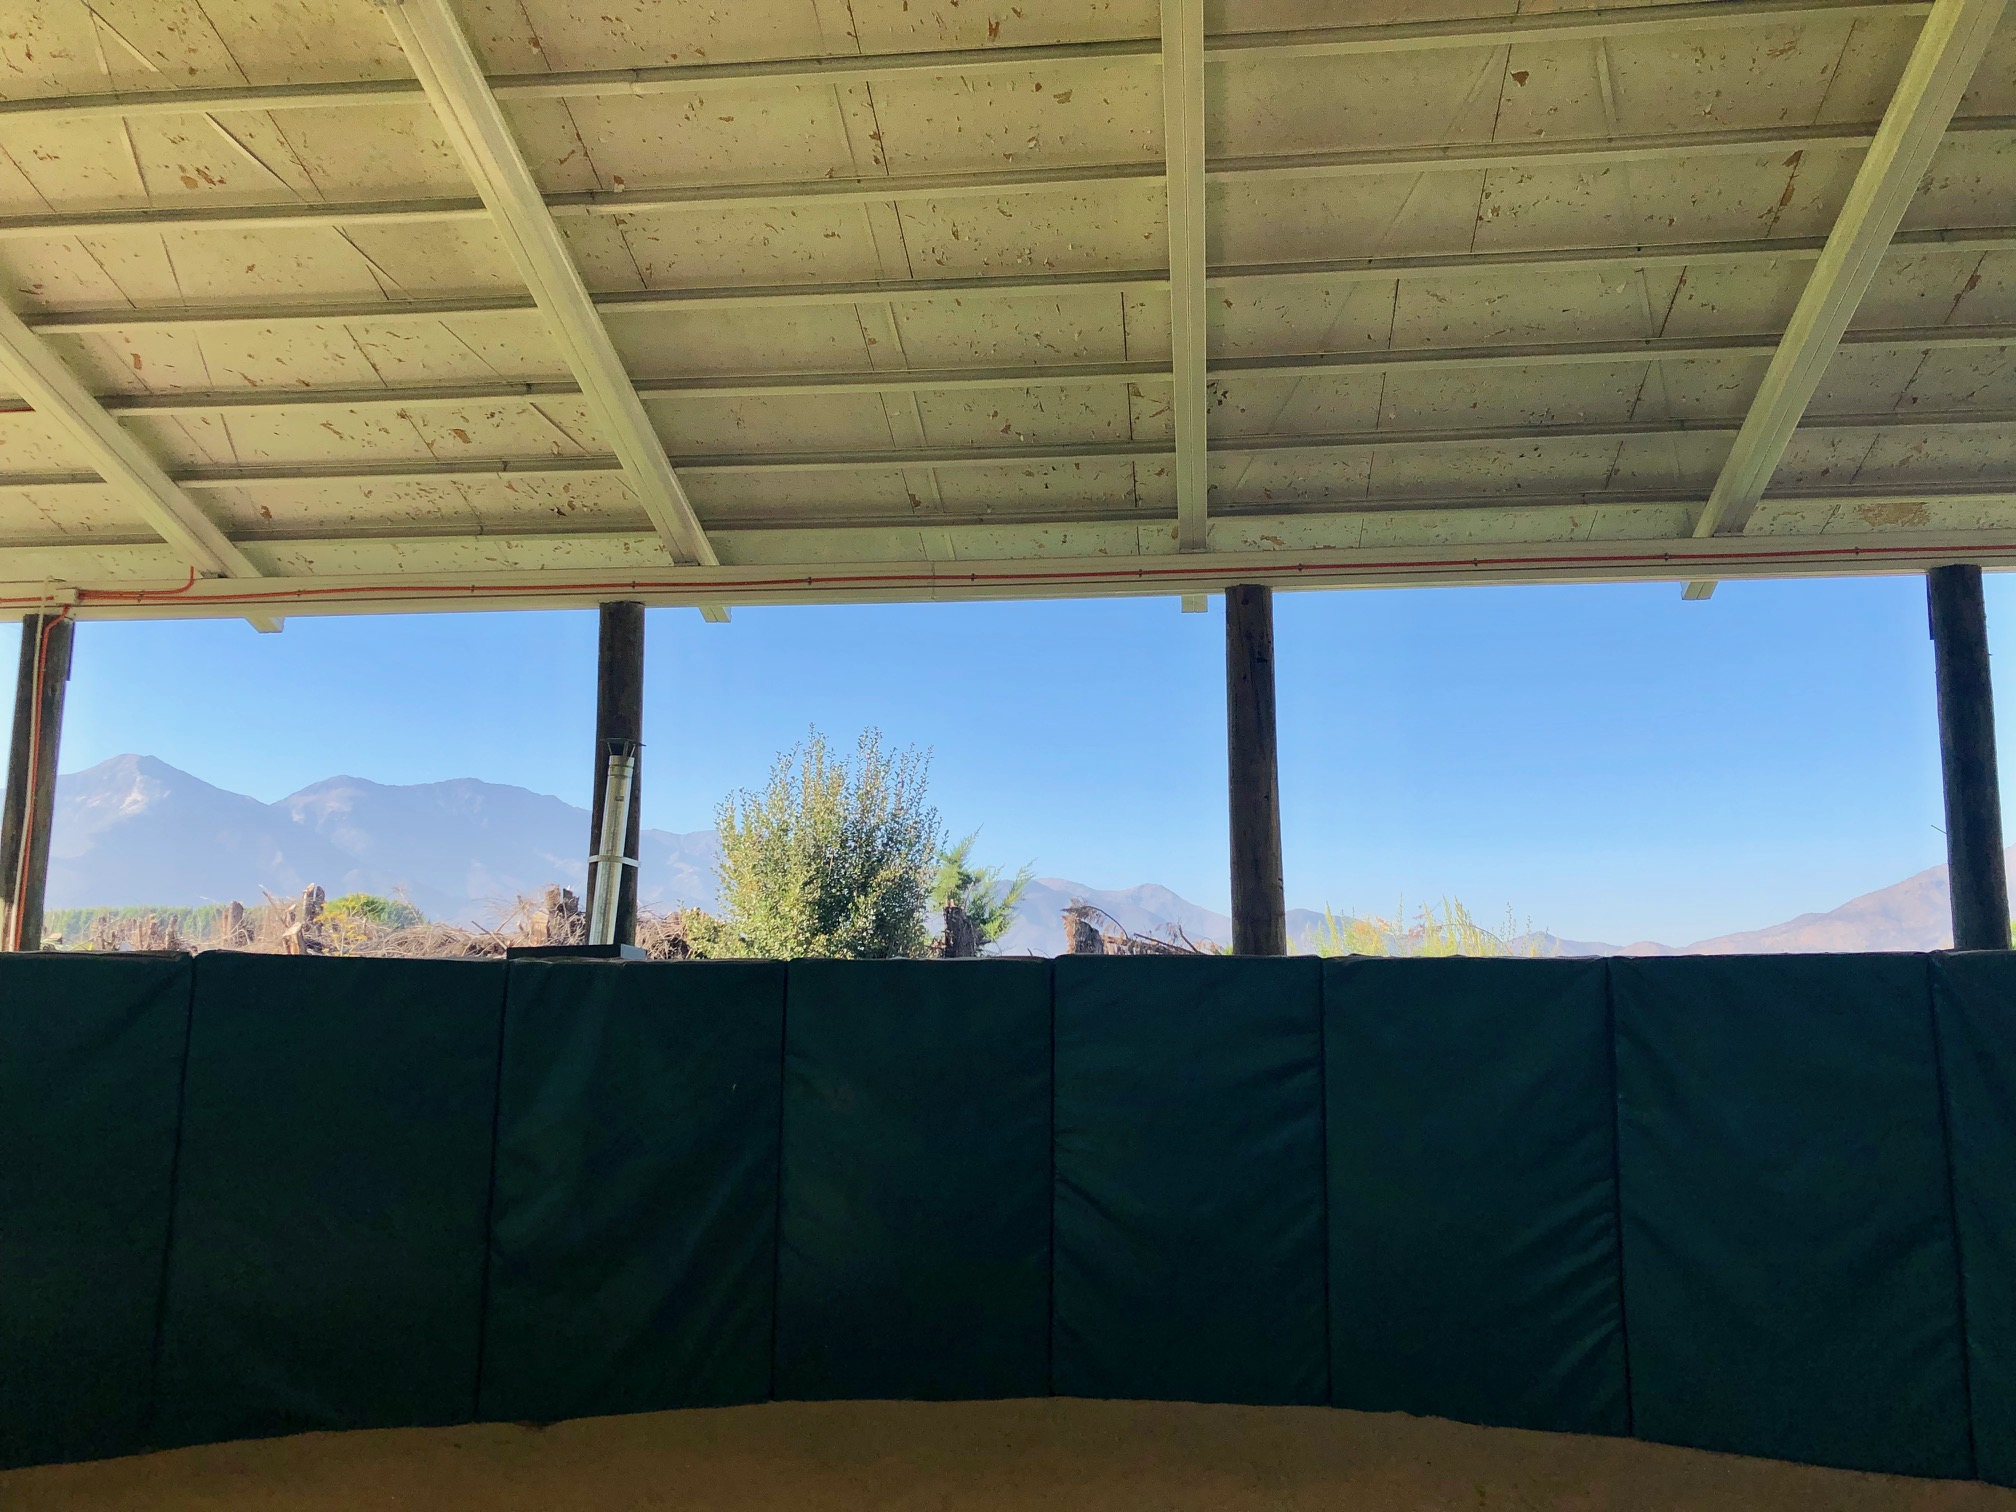 Room with a view: California Chrome's breeding shed is overlooked by the Andes. Photo: Amanda Duckworth